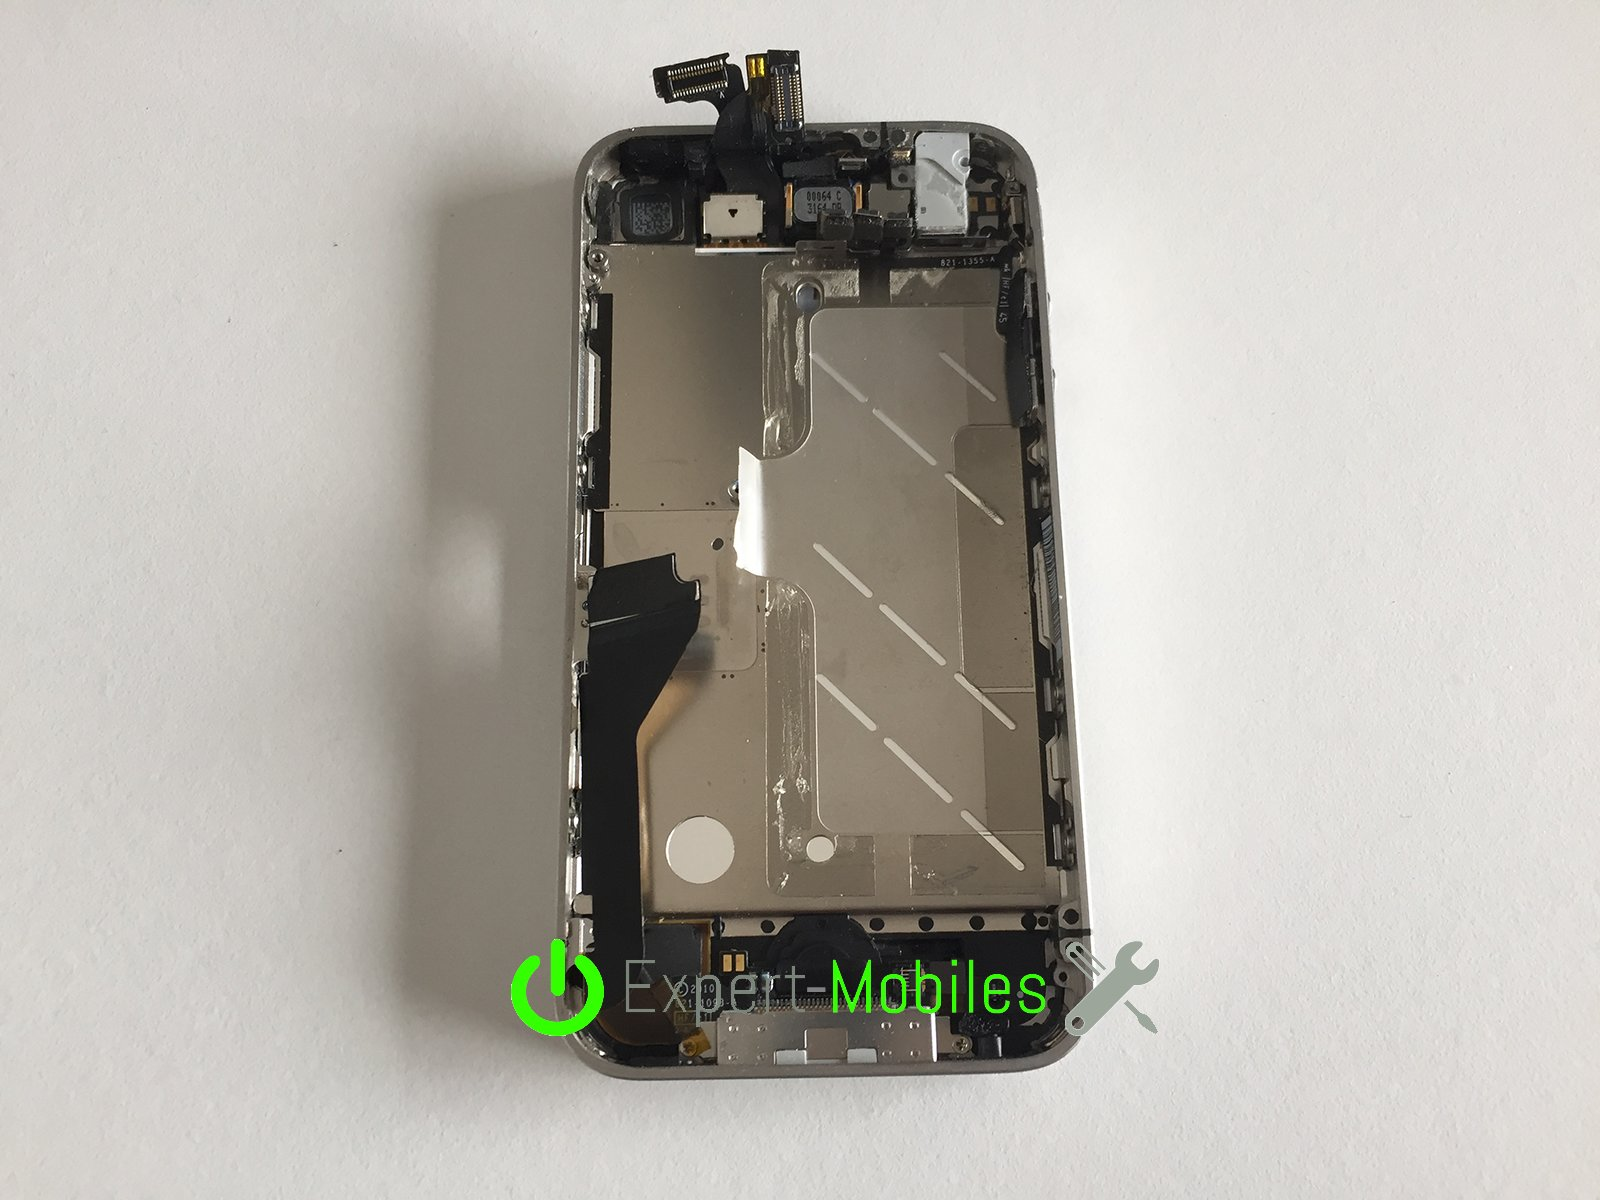 Remplacement cran iphone 4 2 expert mobiles - Reparation telephone lorient ...